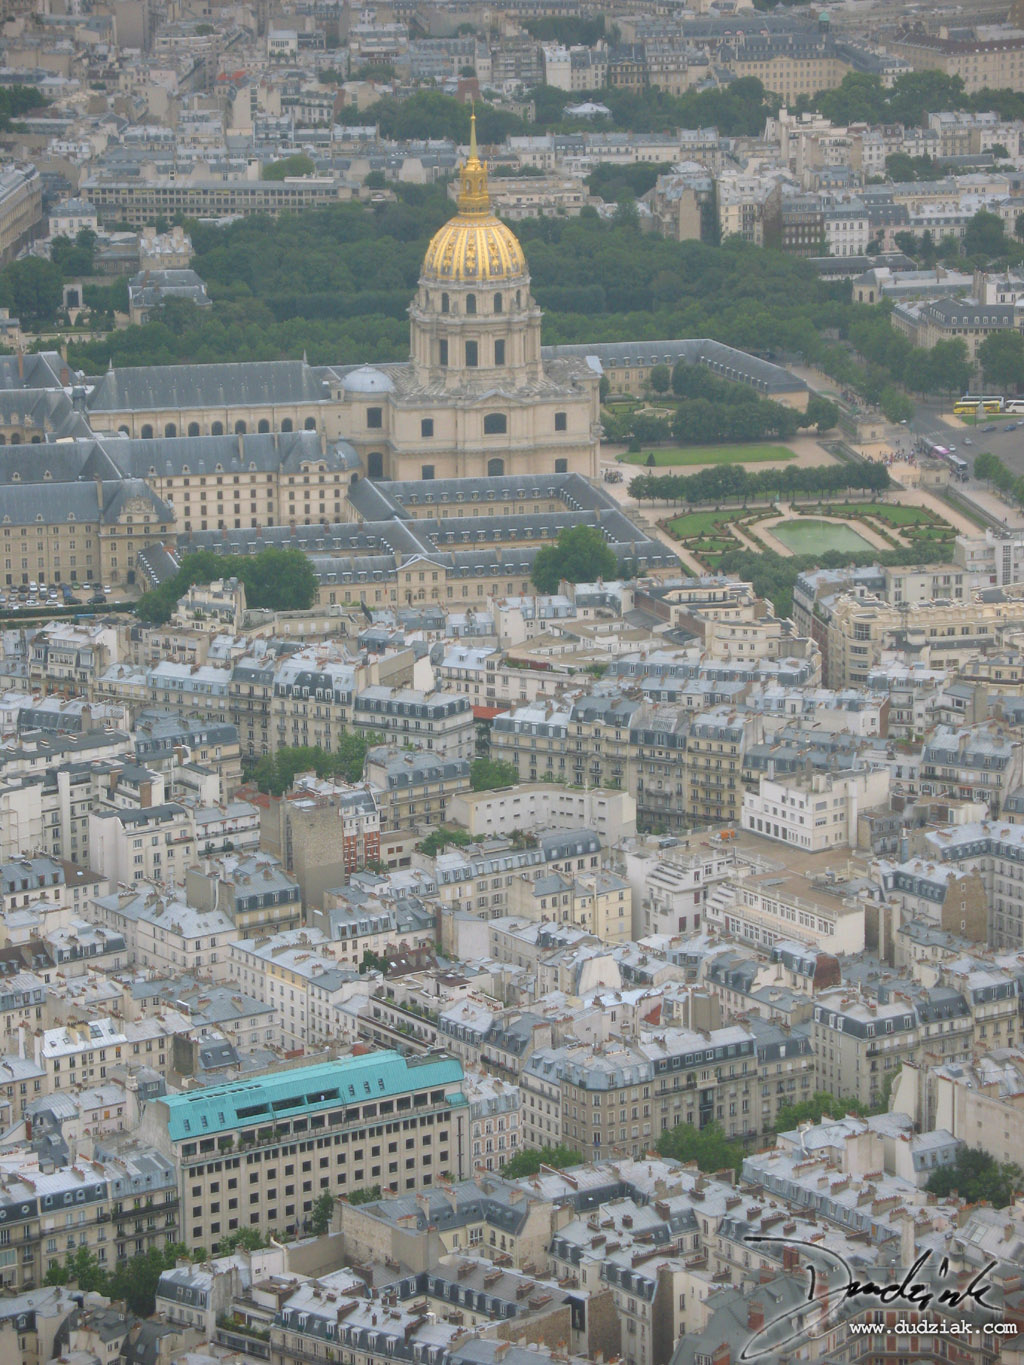 Les Invalides,  Paris France